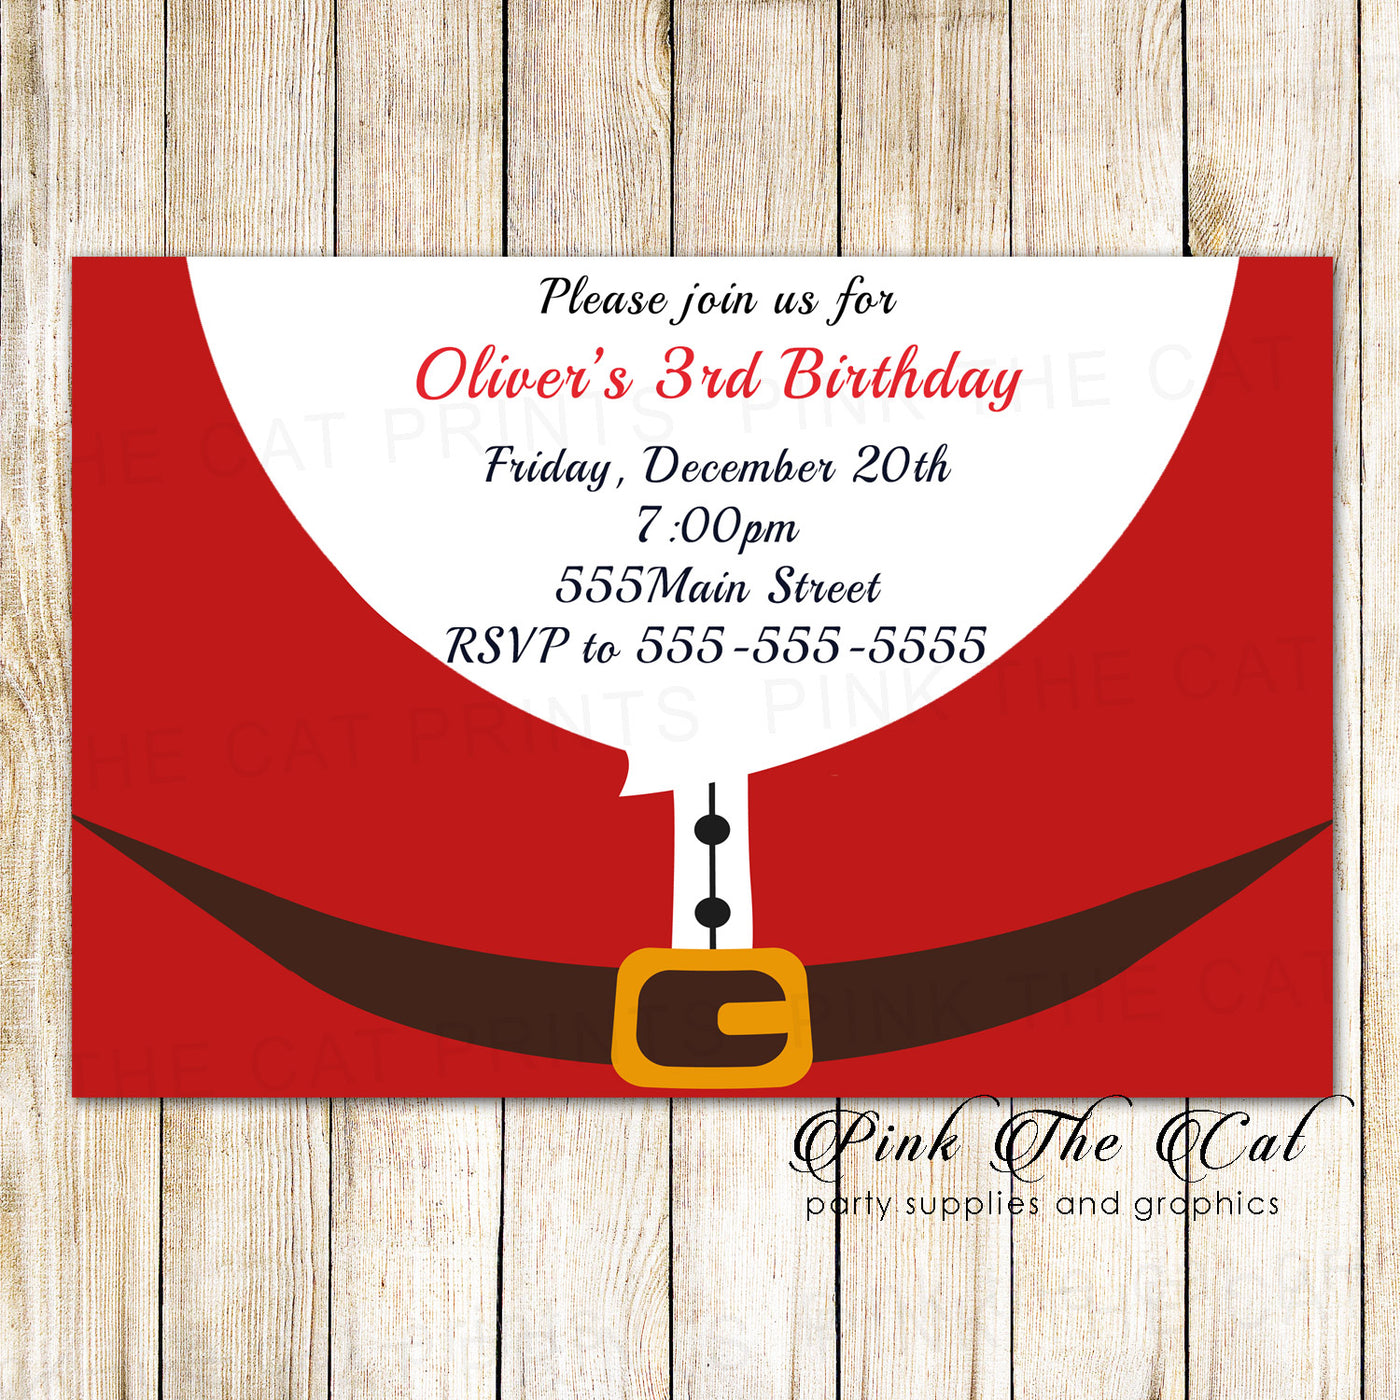 Christmas Birthday Party Invitations.30 Christmas Kids Birthday Party Invitation Santa Claus